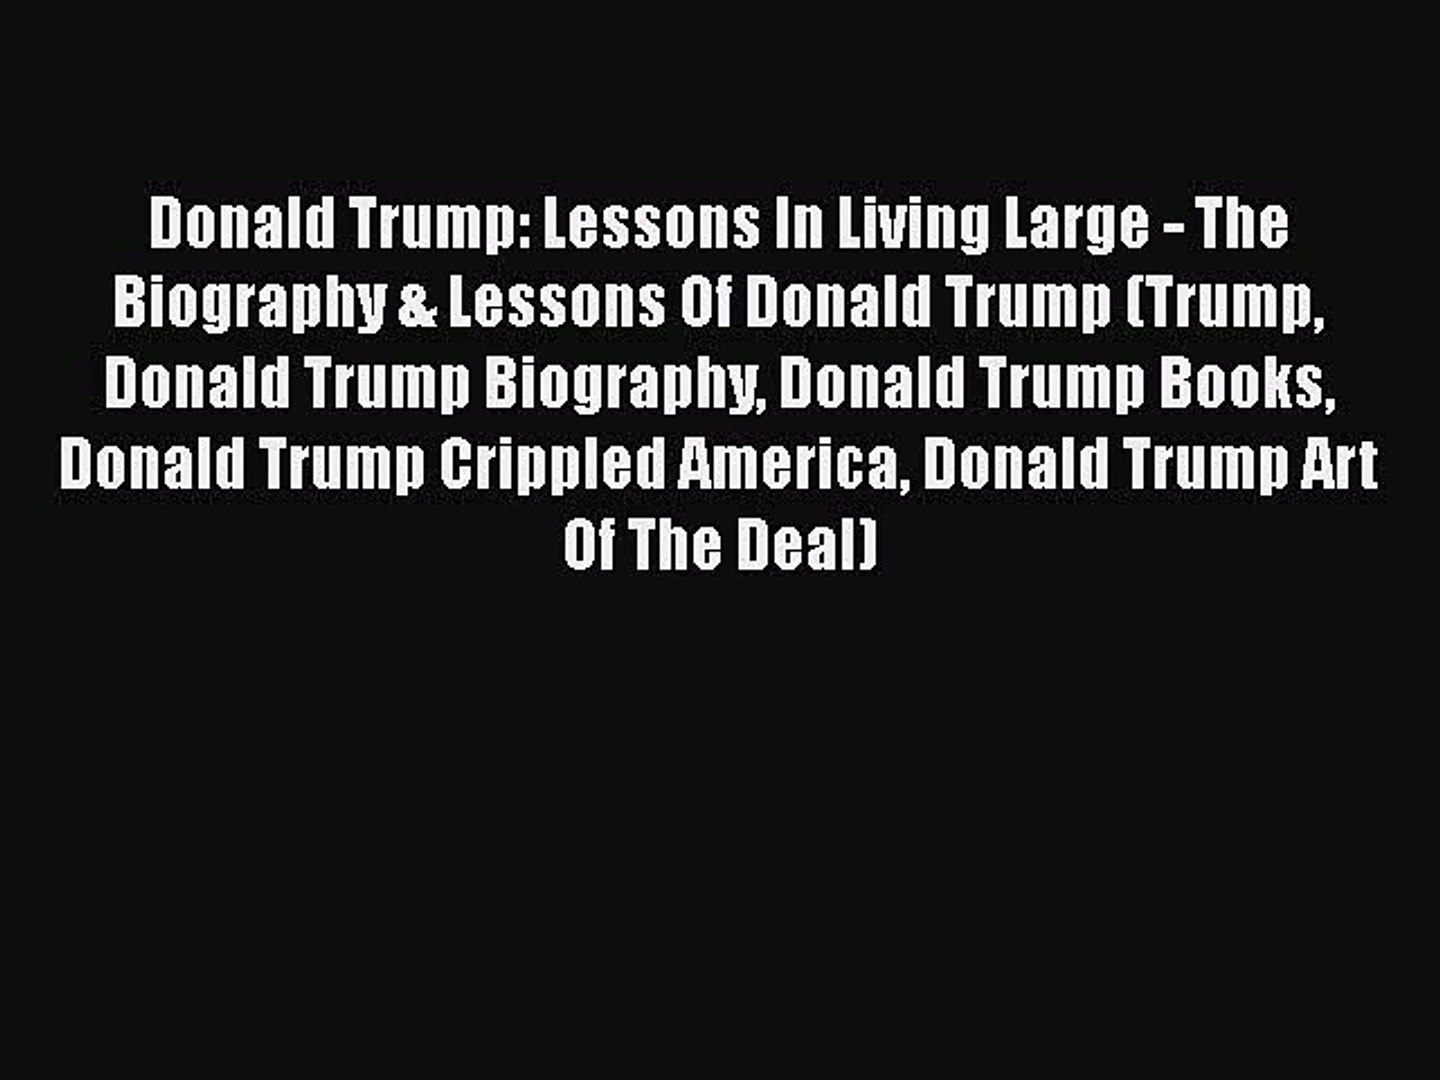 Download Donald Trump: Lessons In Living Large - The Biography & Lessons Of Donald Trump (Trump